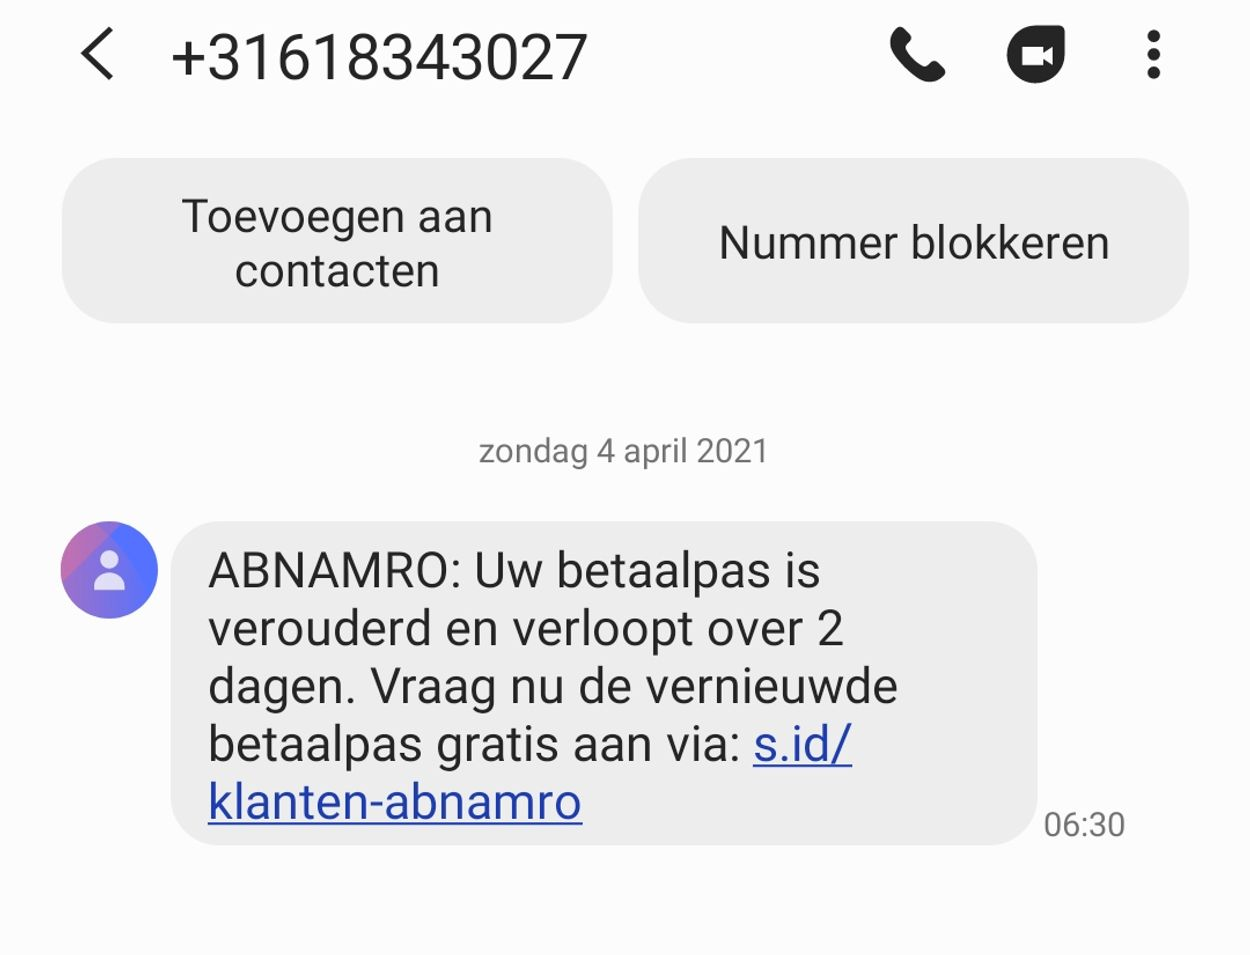 phishing sms abn armo april 2021